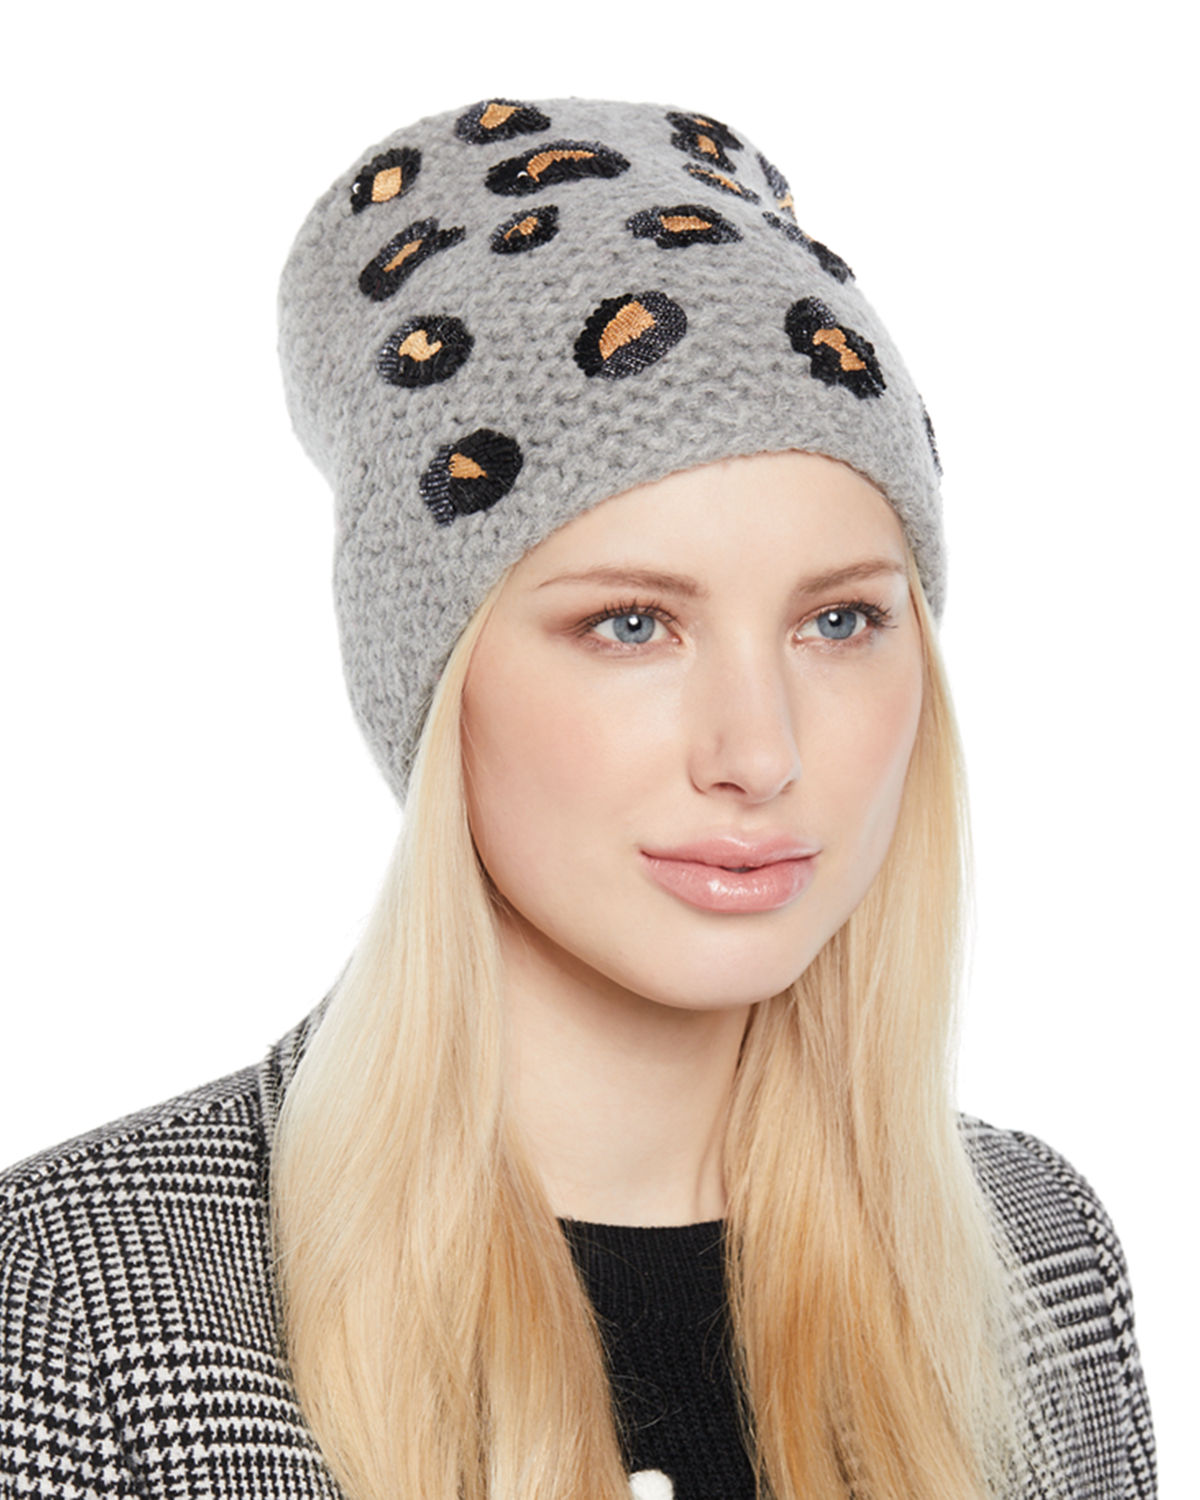 Buy beanies hats for women - Best women s beanies hats shop - Cools.com b240259f4ae